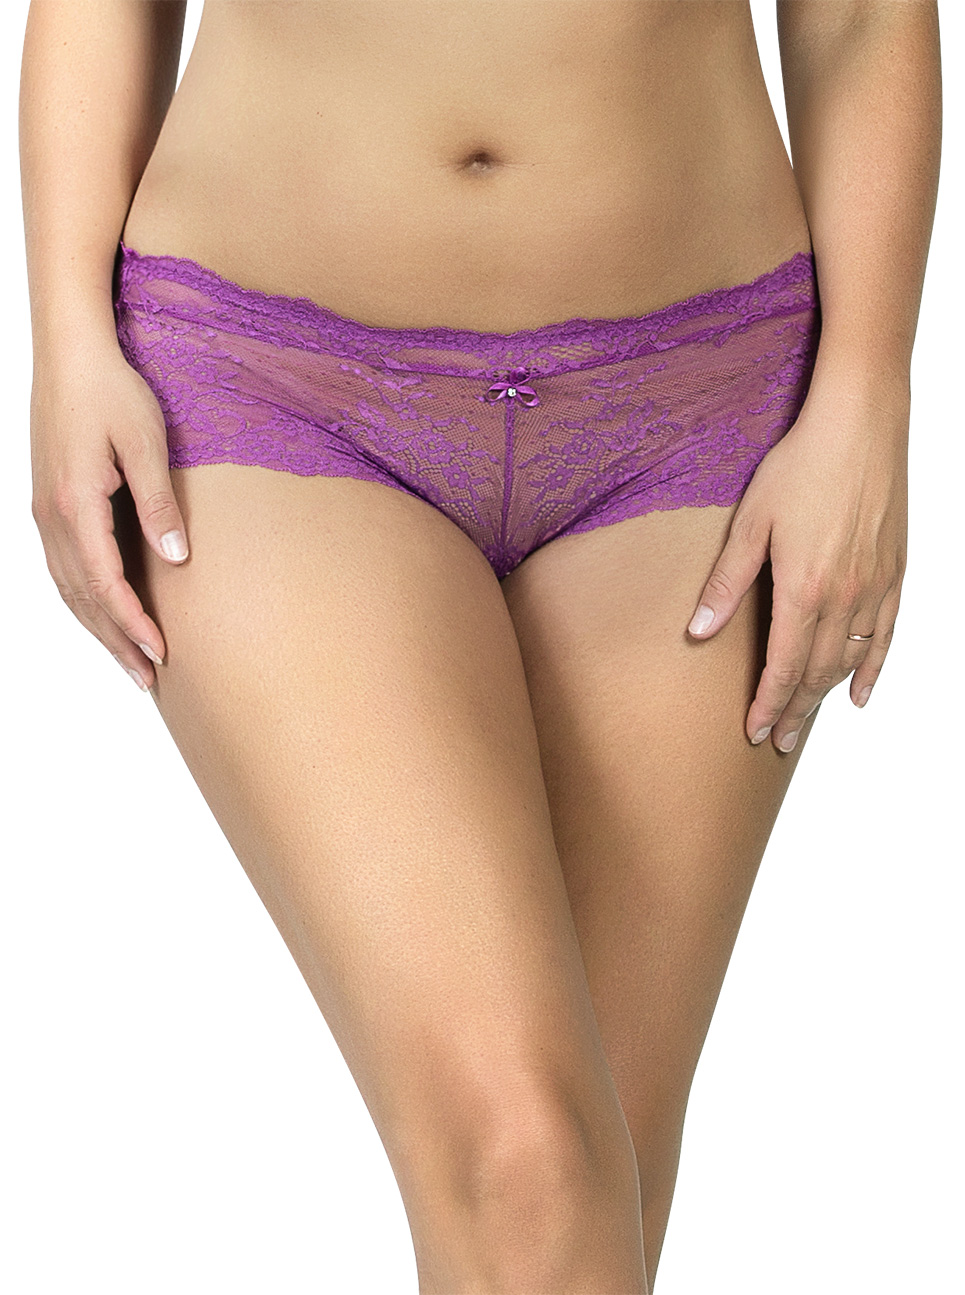 PARFAIT Sandrine HipsterP5355 Orchid Front - Sandrine Hipster Orchid P5355